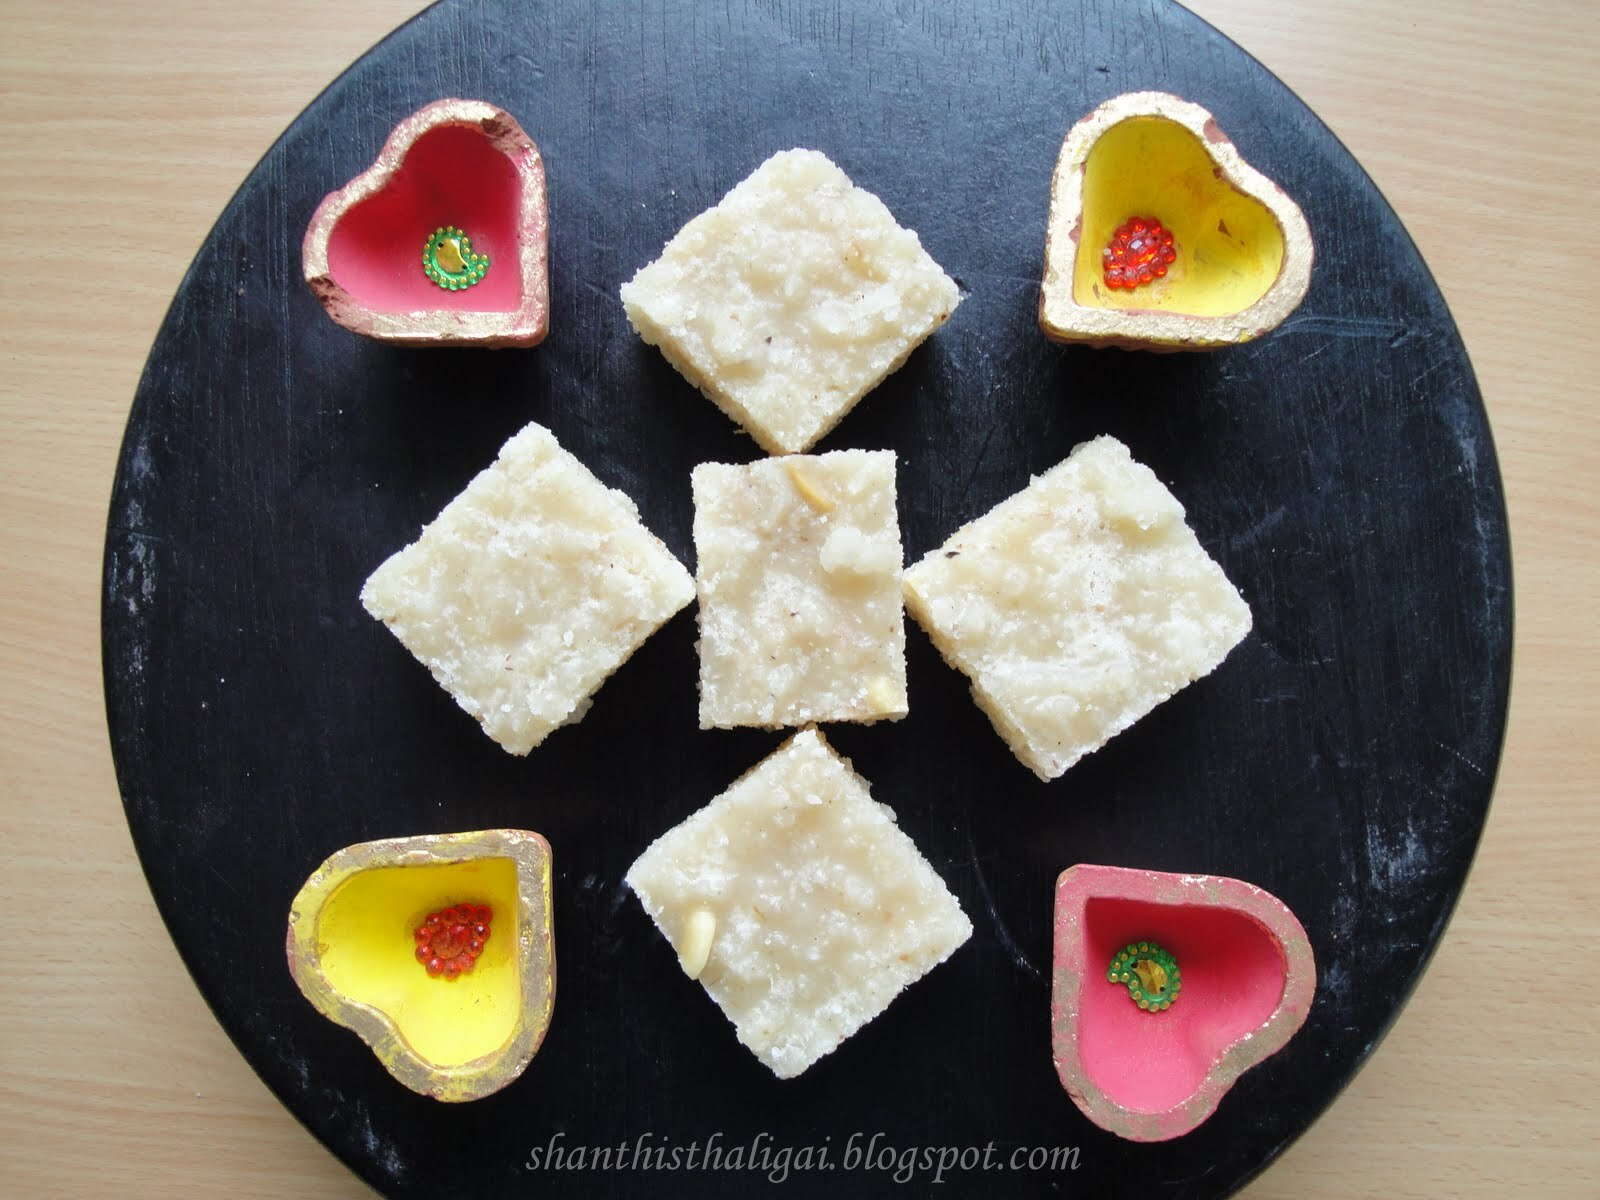 THENGAI (COCONUT) BURFI - KARTHIGAI - A FESTIVAL OF LIGHTS